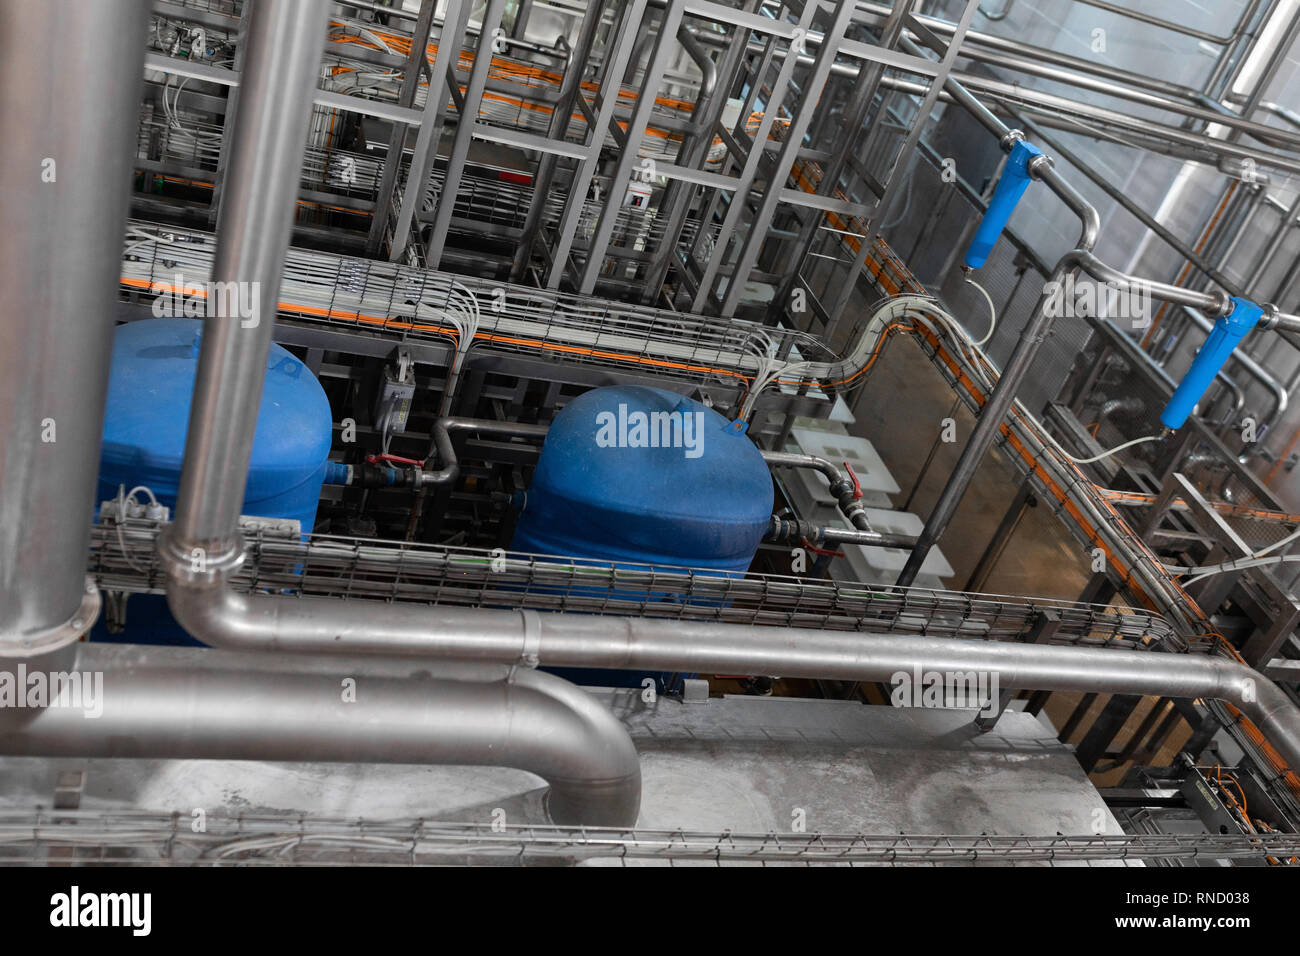 Pipeline and blue tanks. Pressure supply system - Stock Image